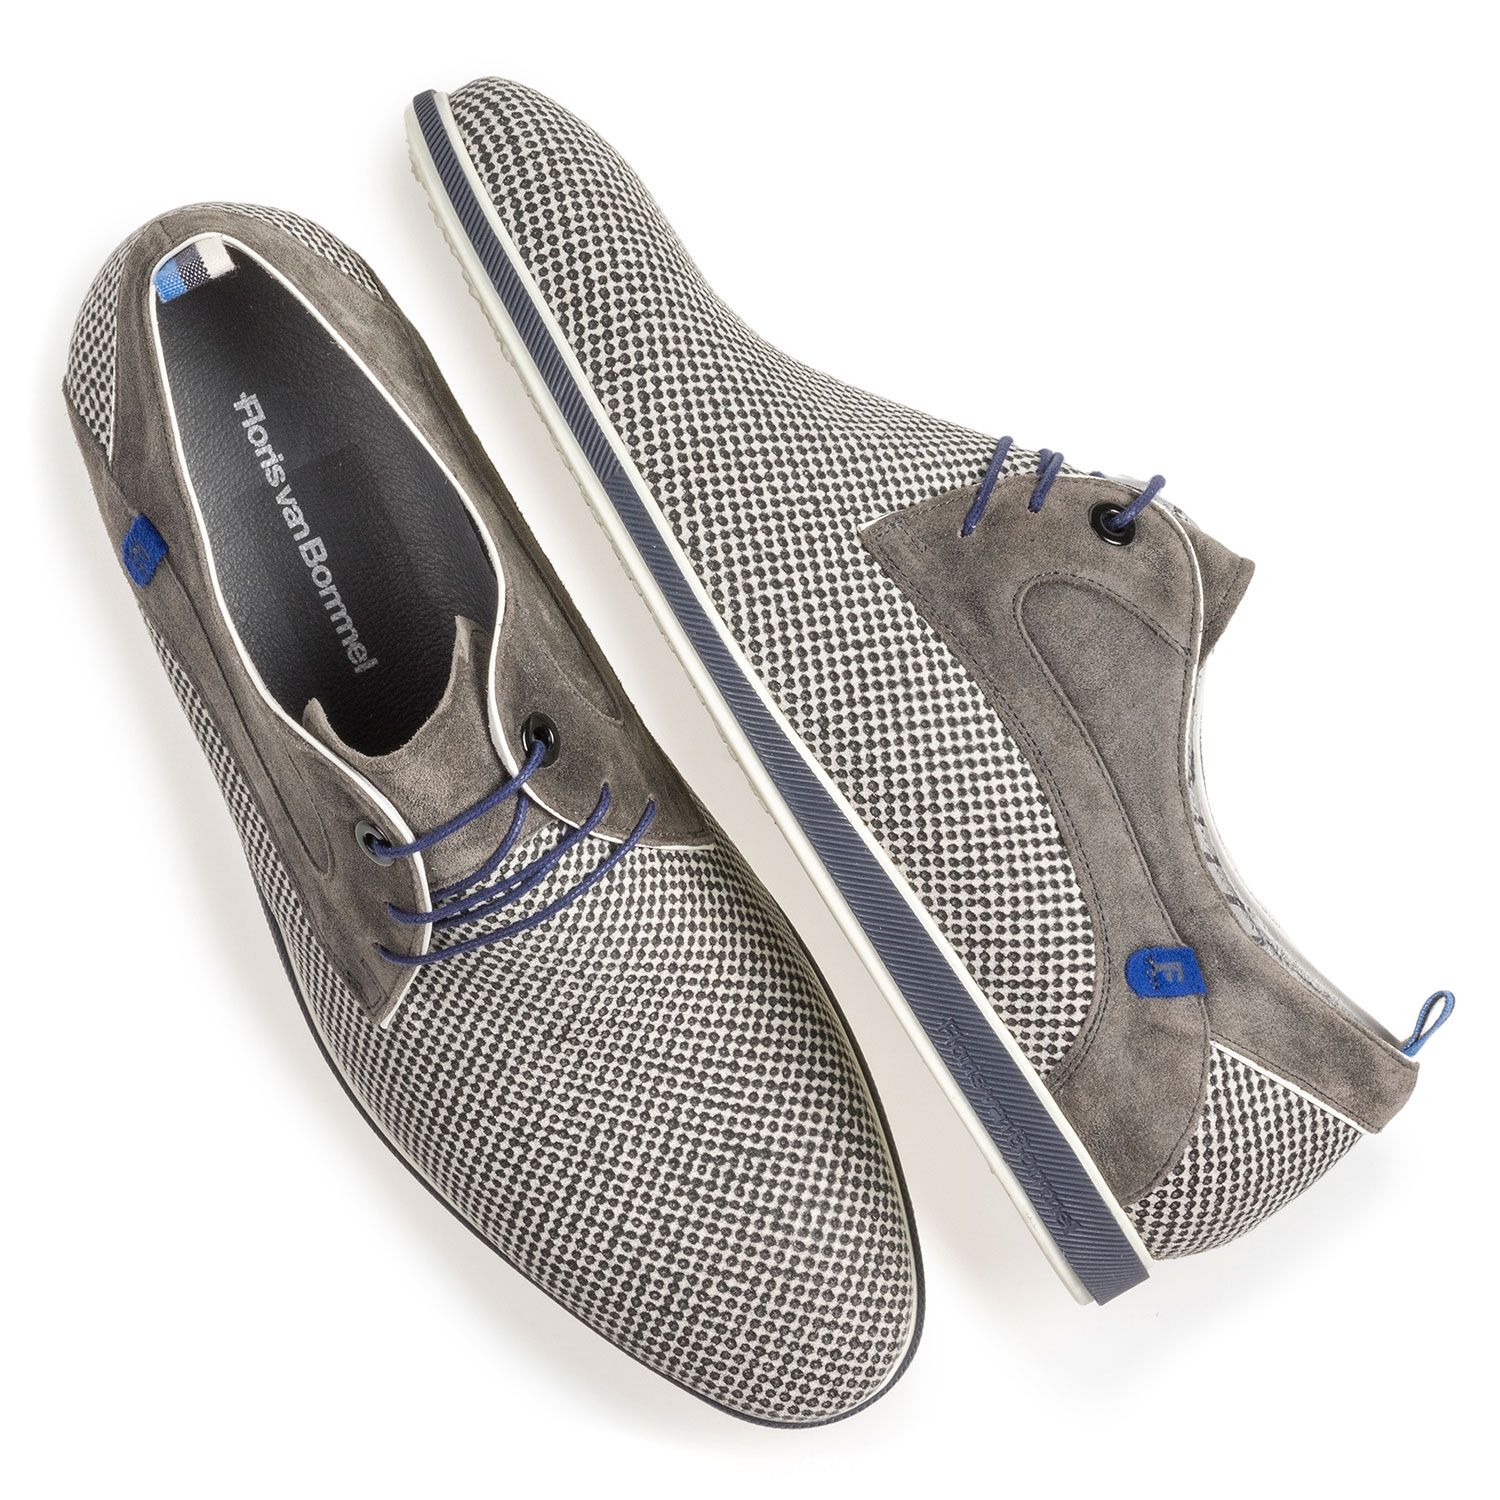 18201/12 - Grey suede leather lace shoe with print